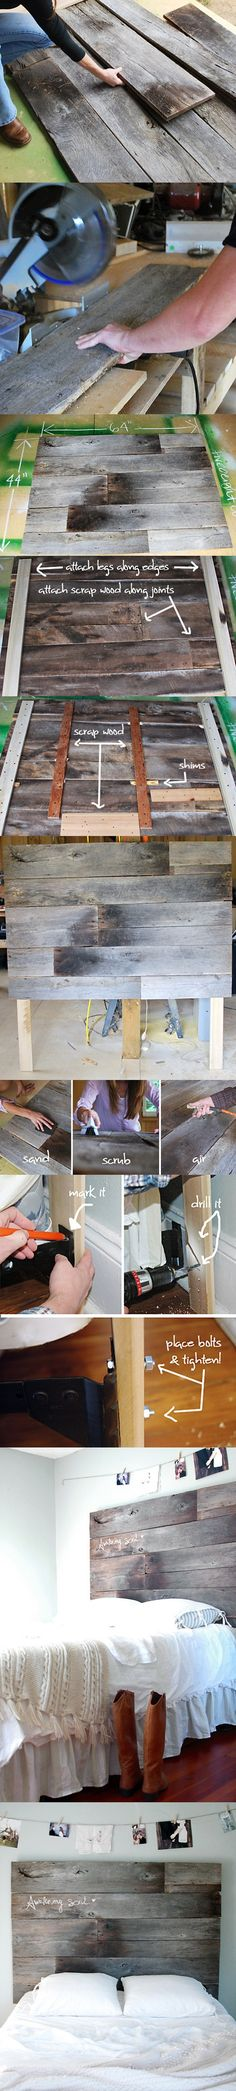 """Homemade Headboard. Idea: what if instead of a rug, we make a wooden slab like this headboard to put over the carpet as an """"area rug"""" kinda look?"""